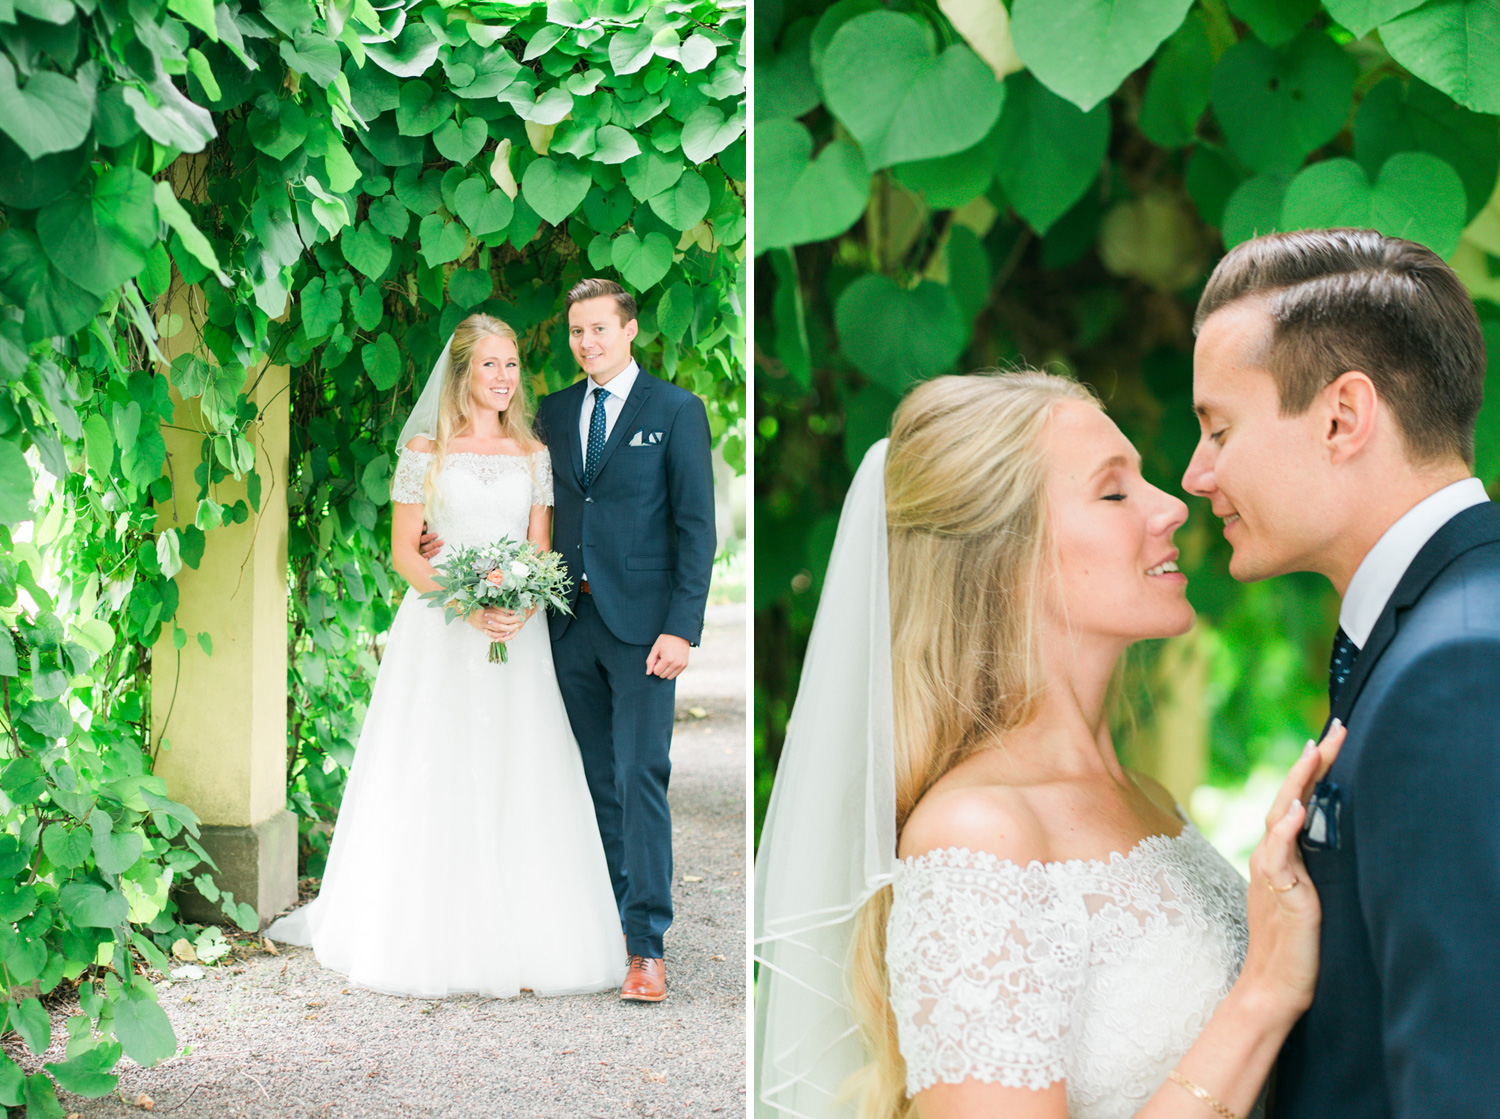 023-sweden-vidbynäs-wedding-photographer-bröllopsfotograf.jpg